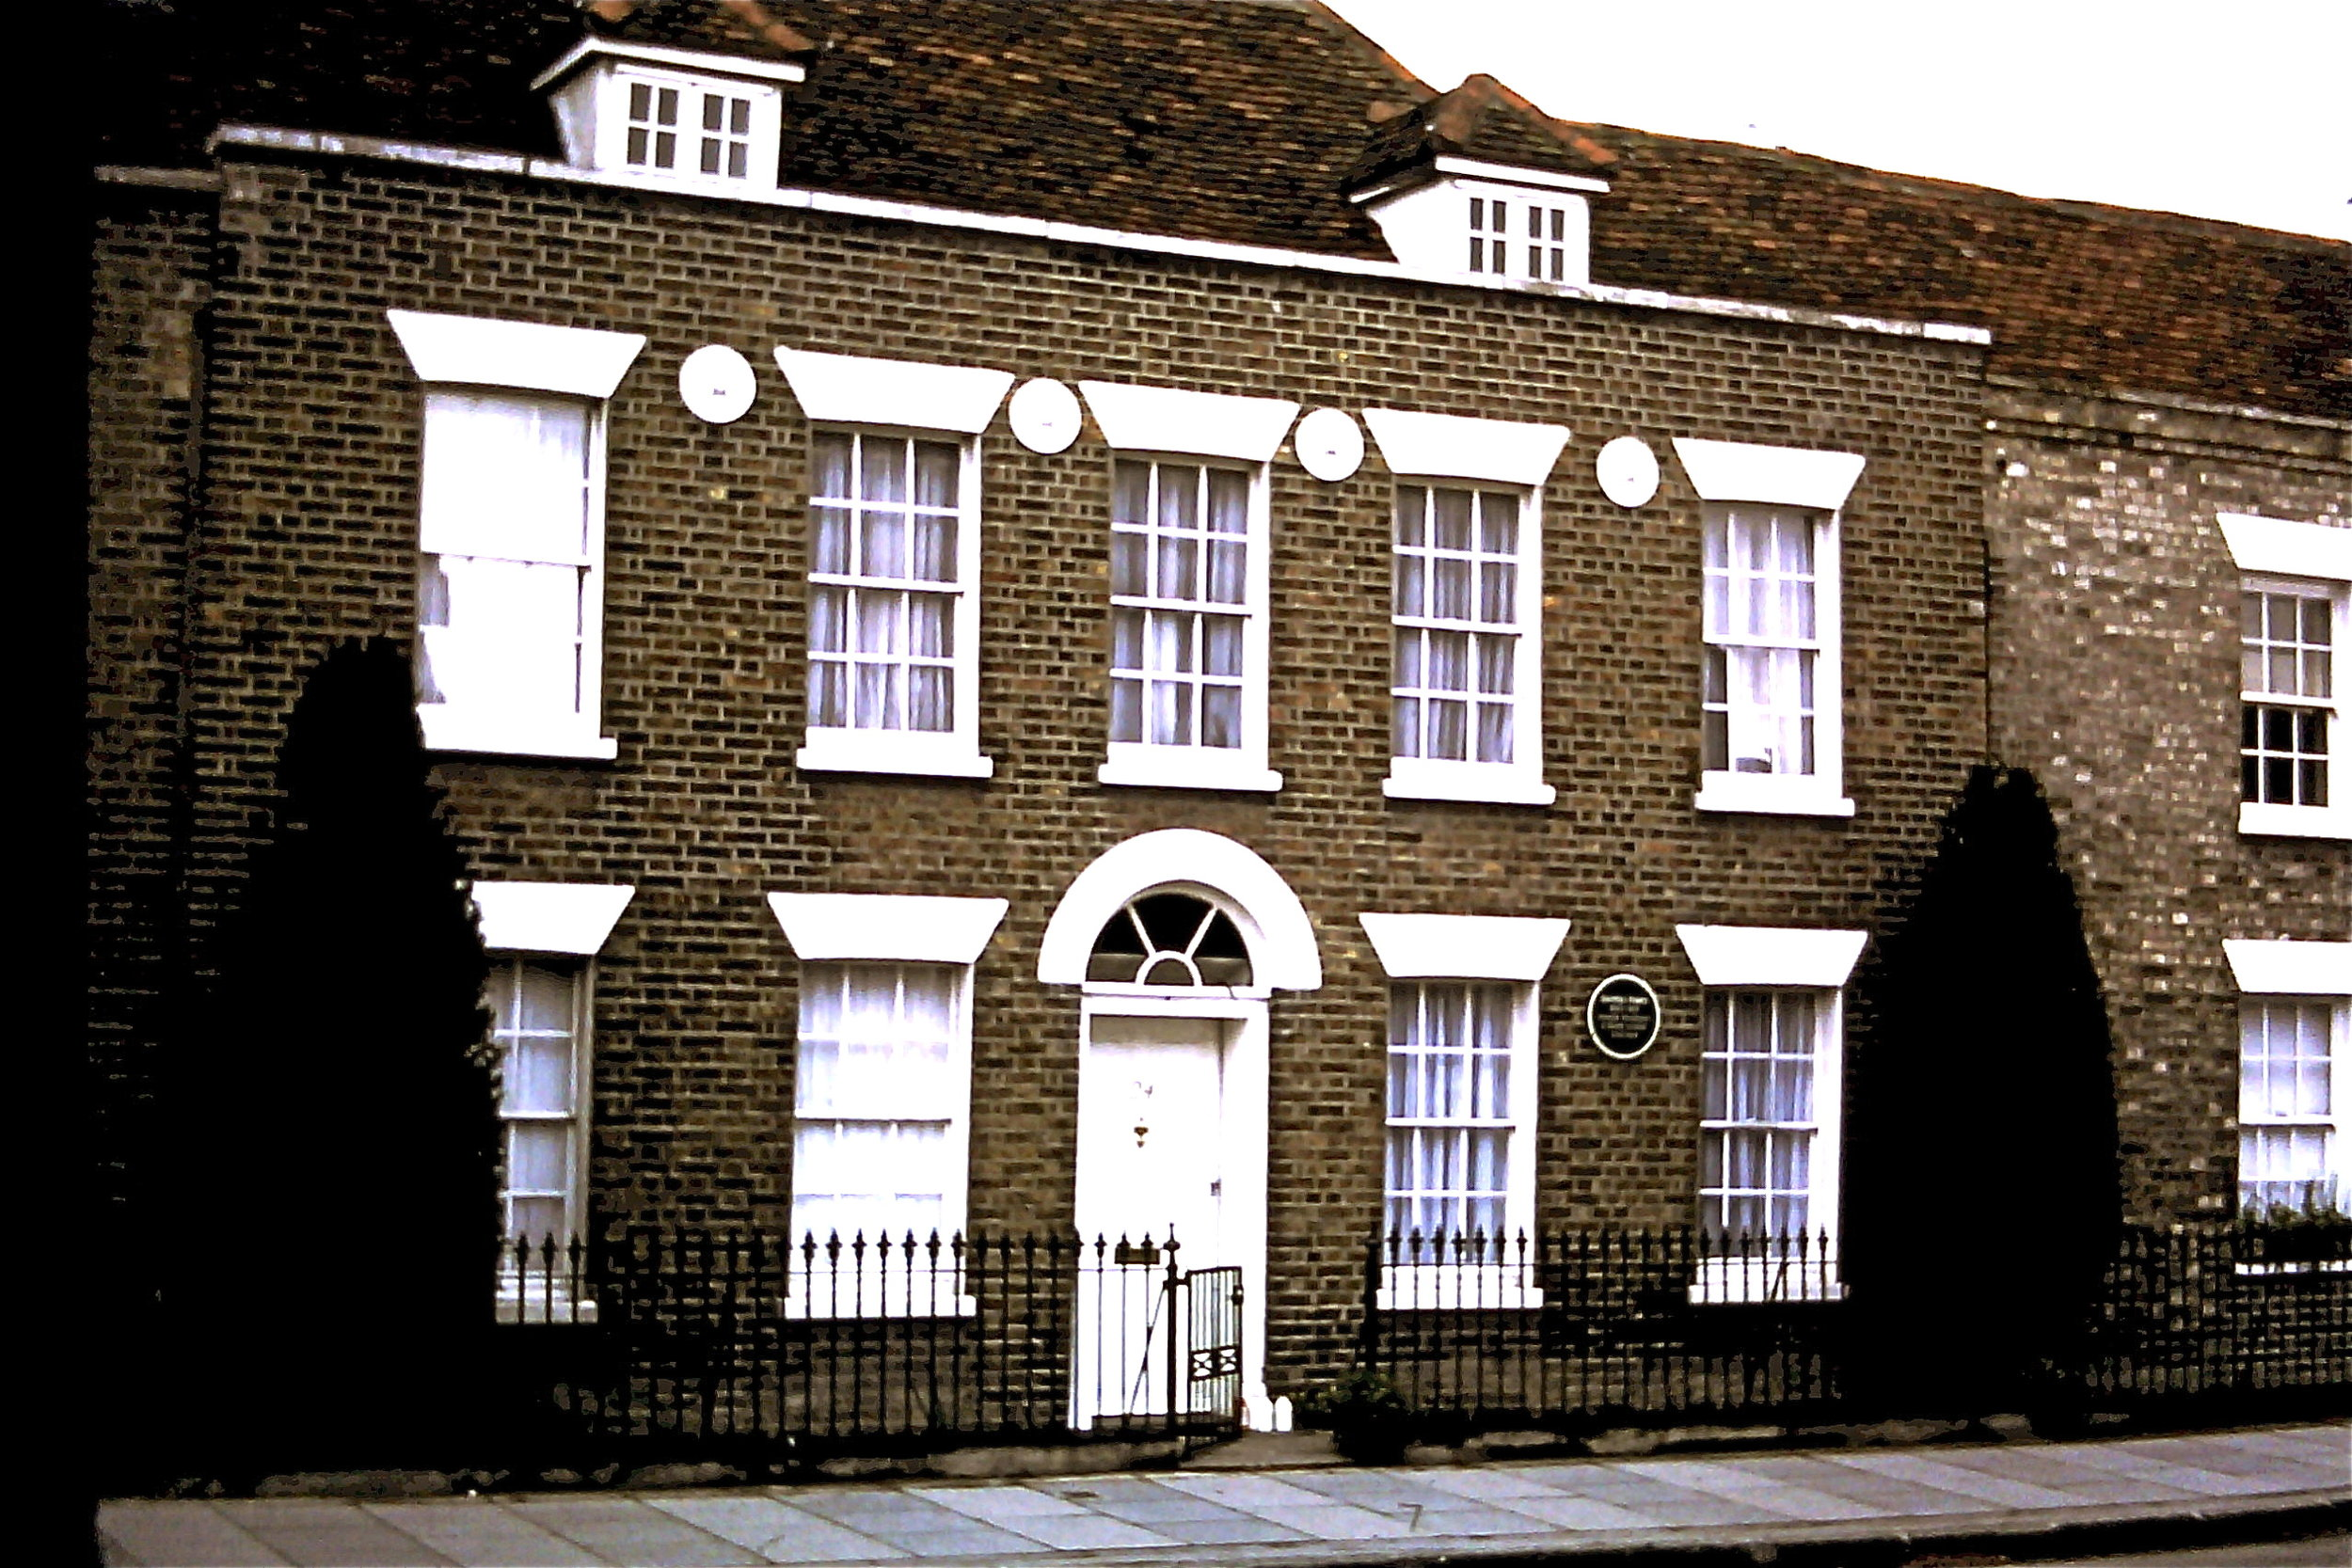 Sayers' house in Newland St, Witham, 1980